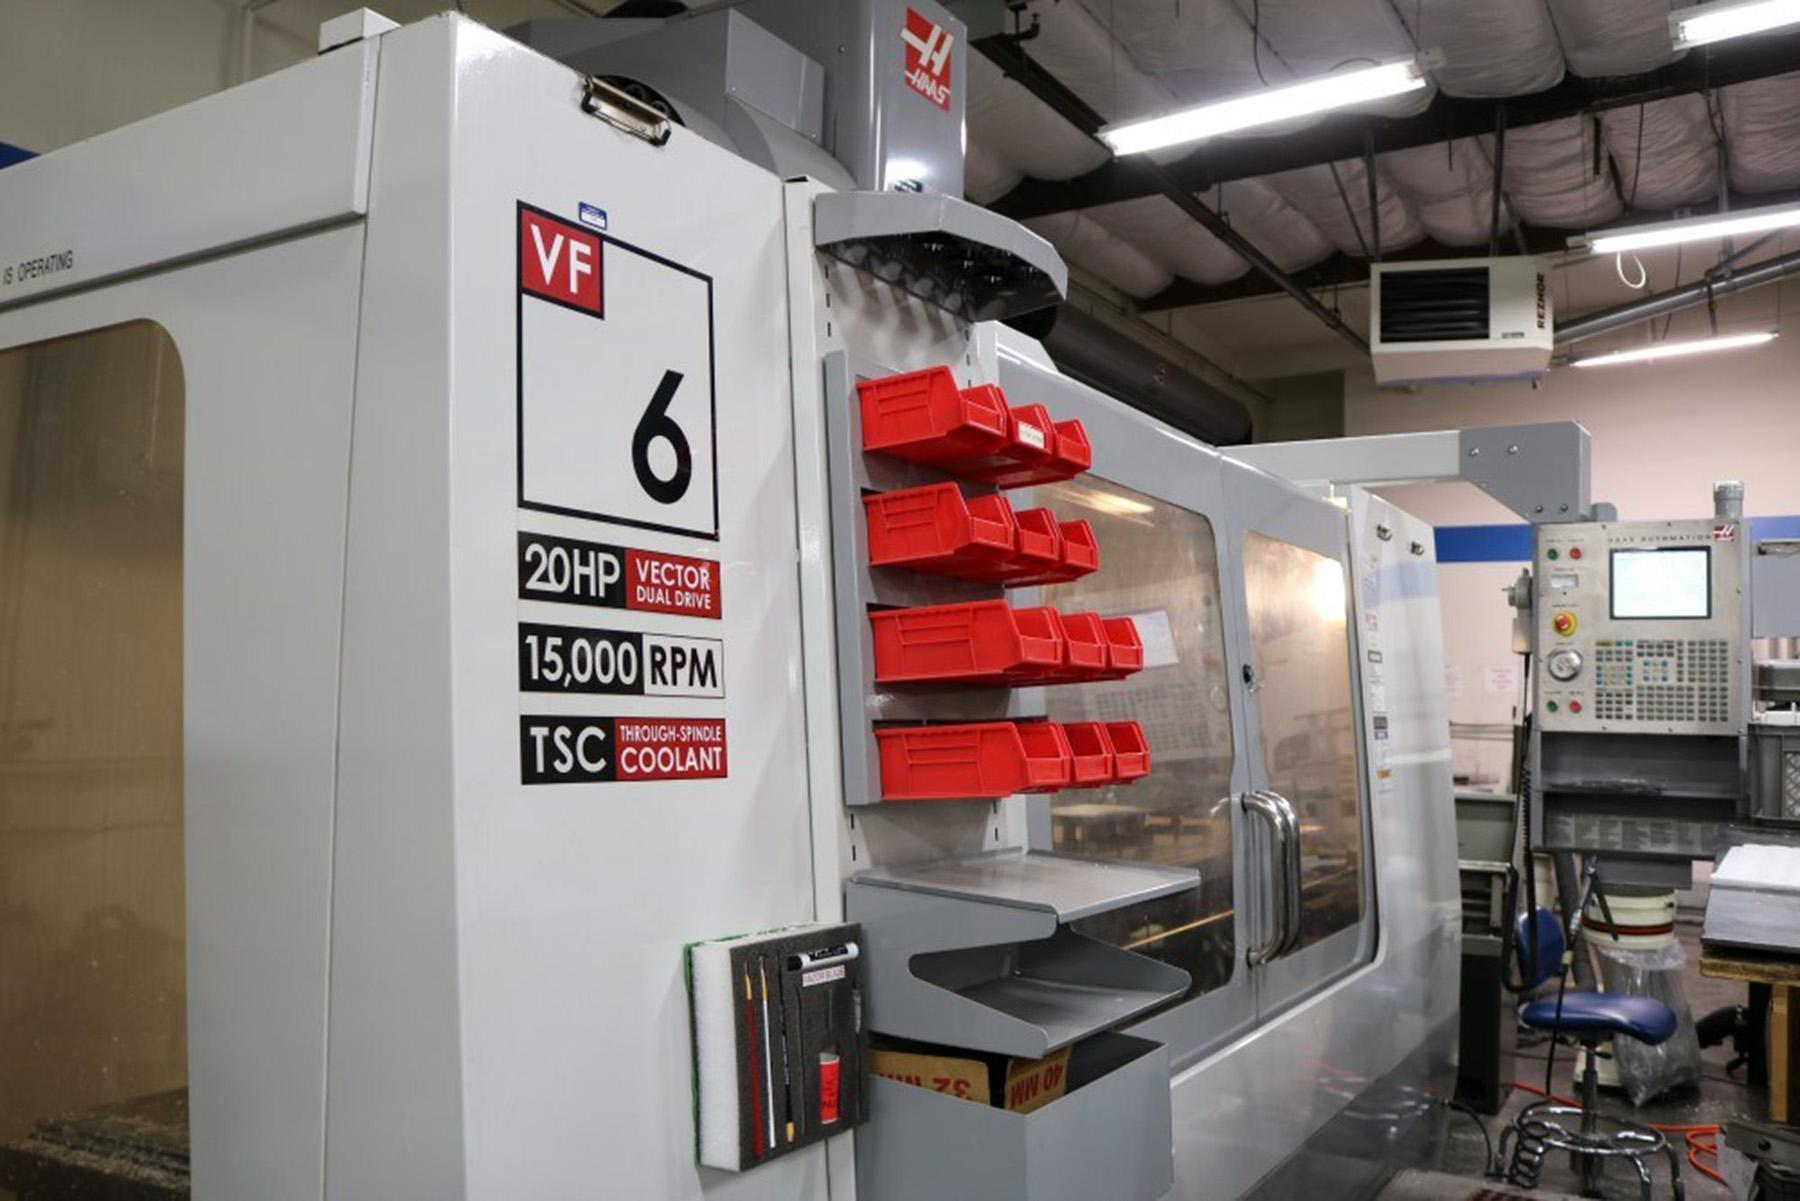 USED, HAAS VF-6D/40 CNC VERTICAL MACHINING CENTER